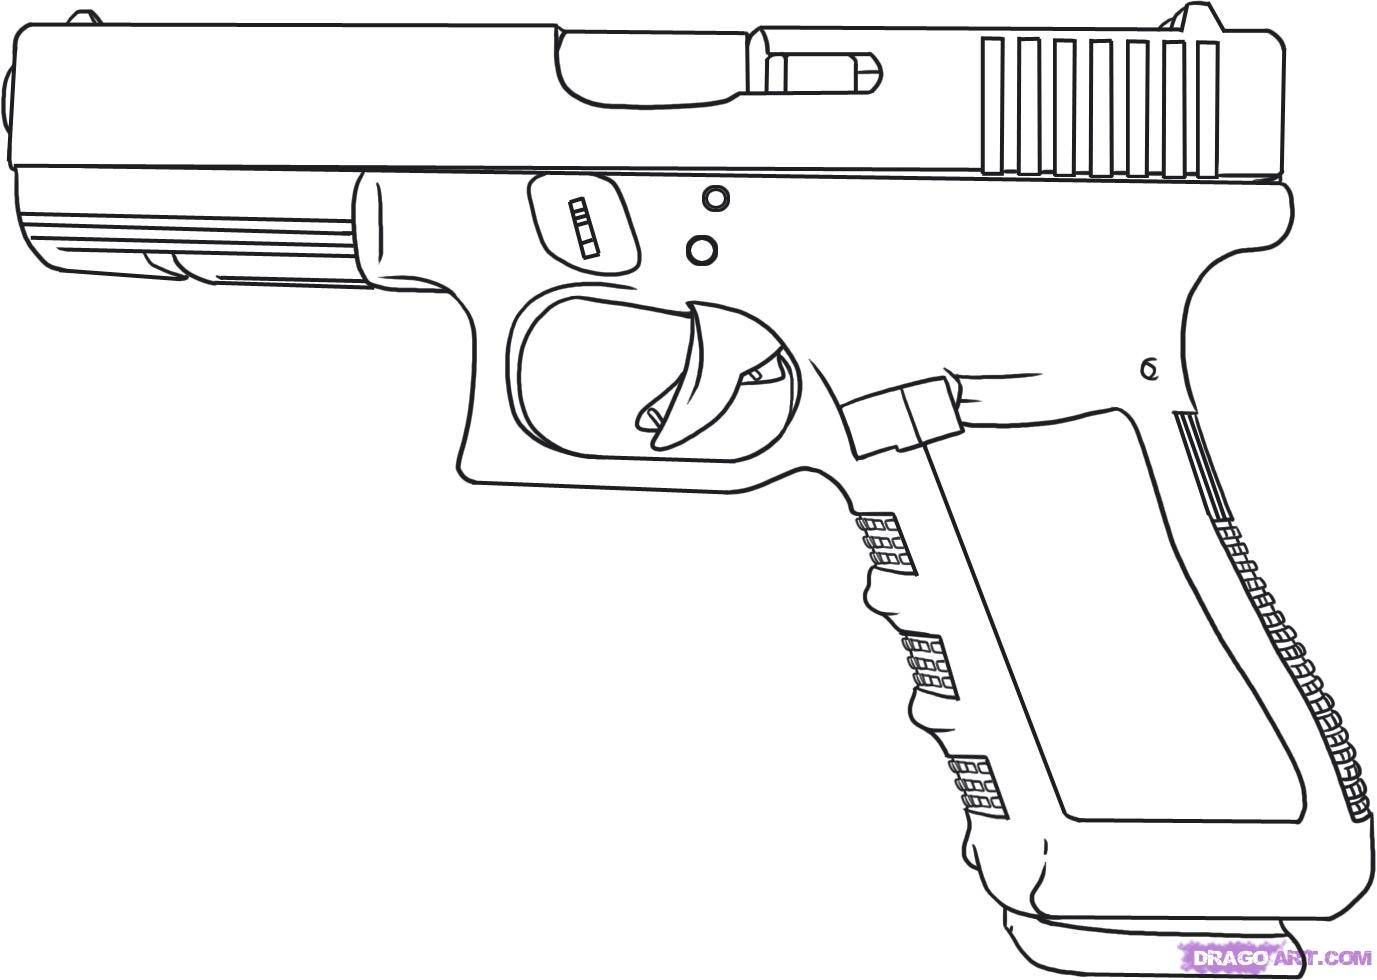 Easy Gun Drawings Picture To Draw In 2019 Drawings Pistol